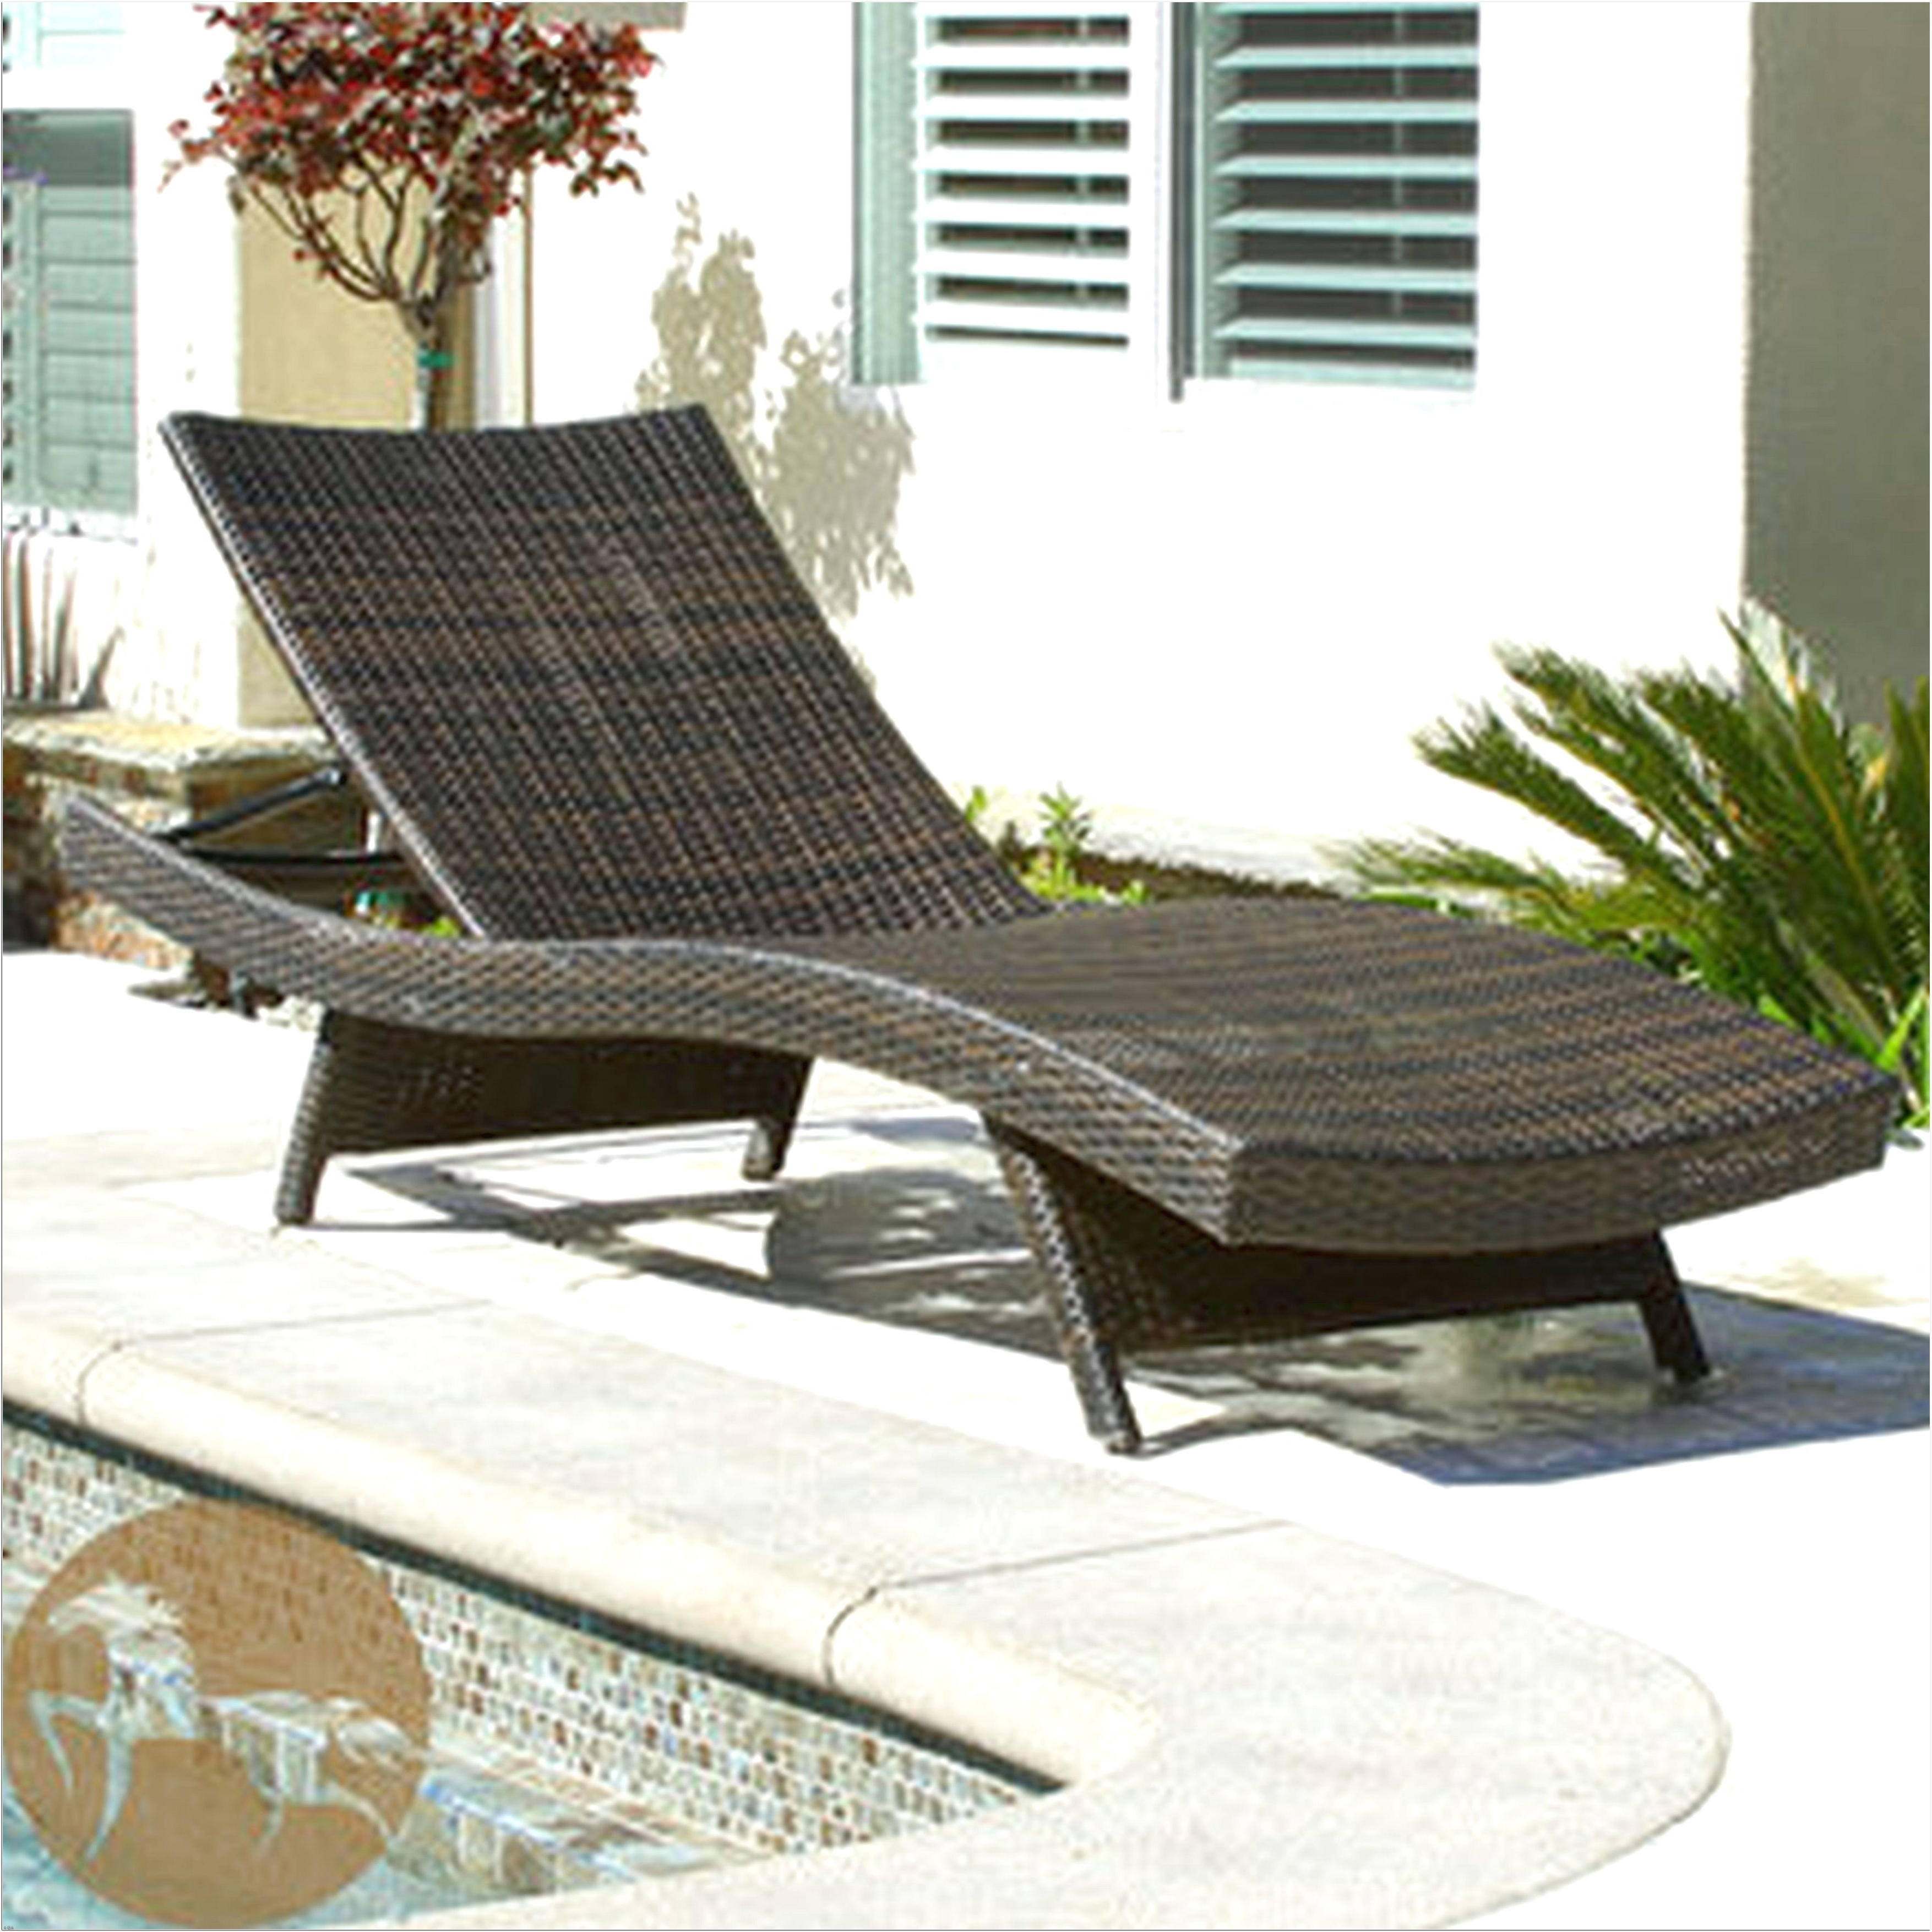 Tropitone Lounge Chair Covers • Lounge Chairs Ideas Within Well Liked Tropitone Chaise Lounges (View 12 of 15)